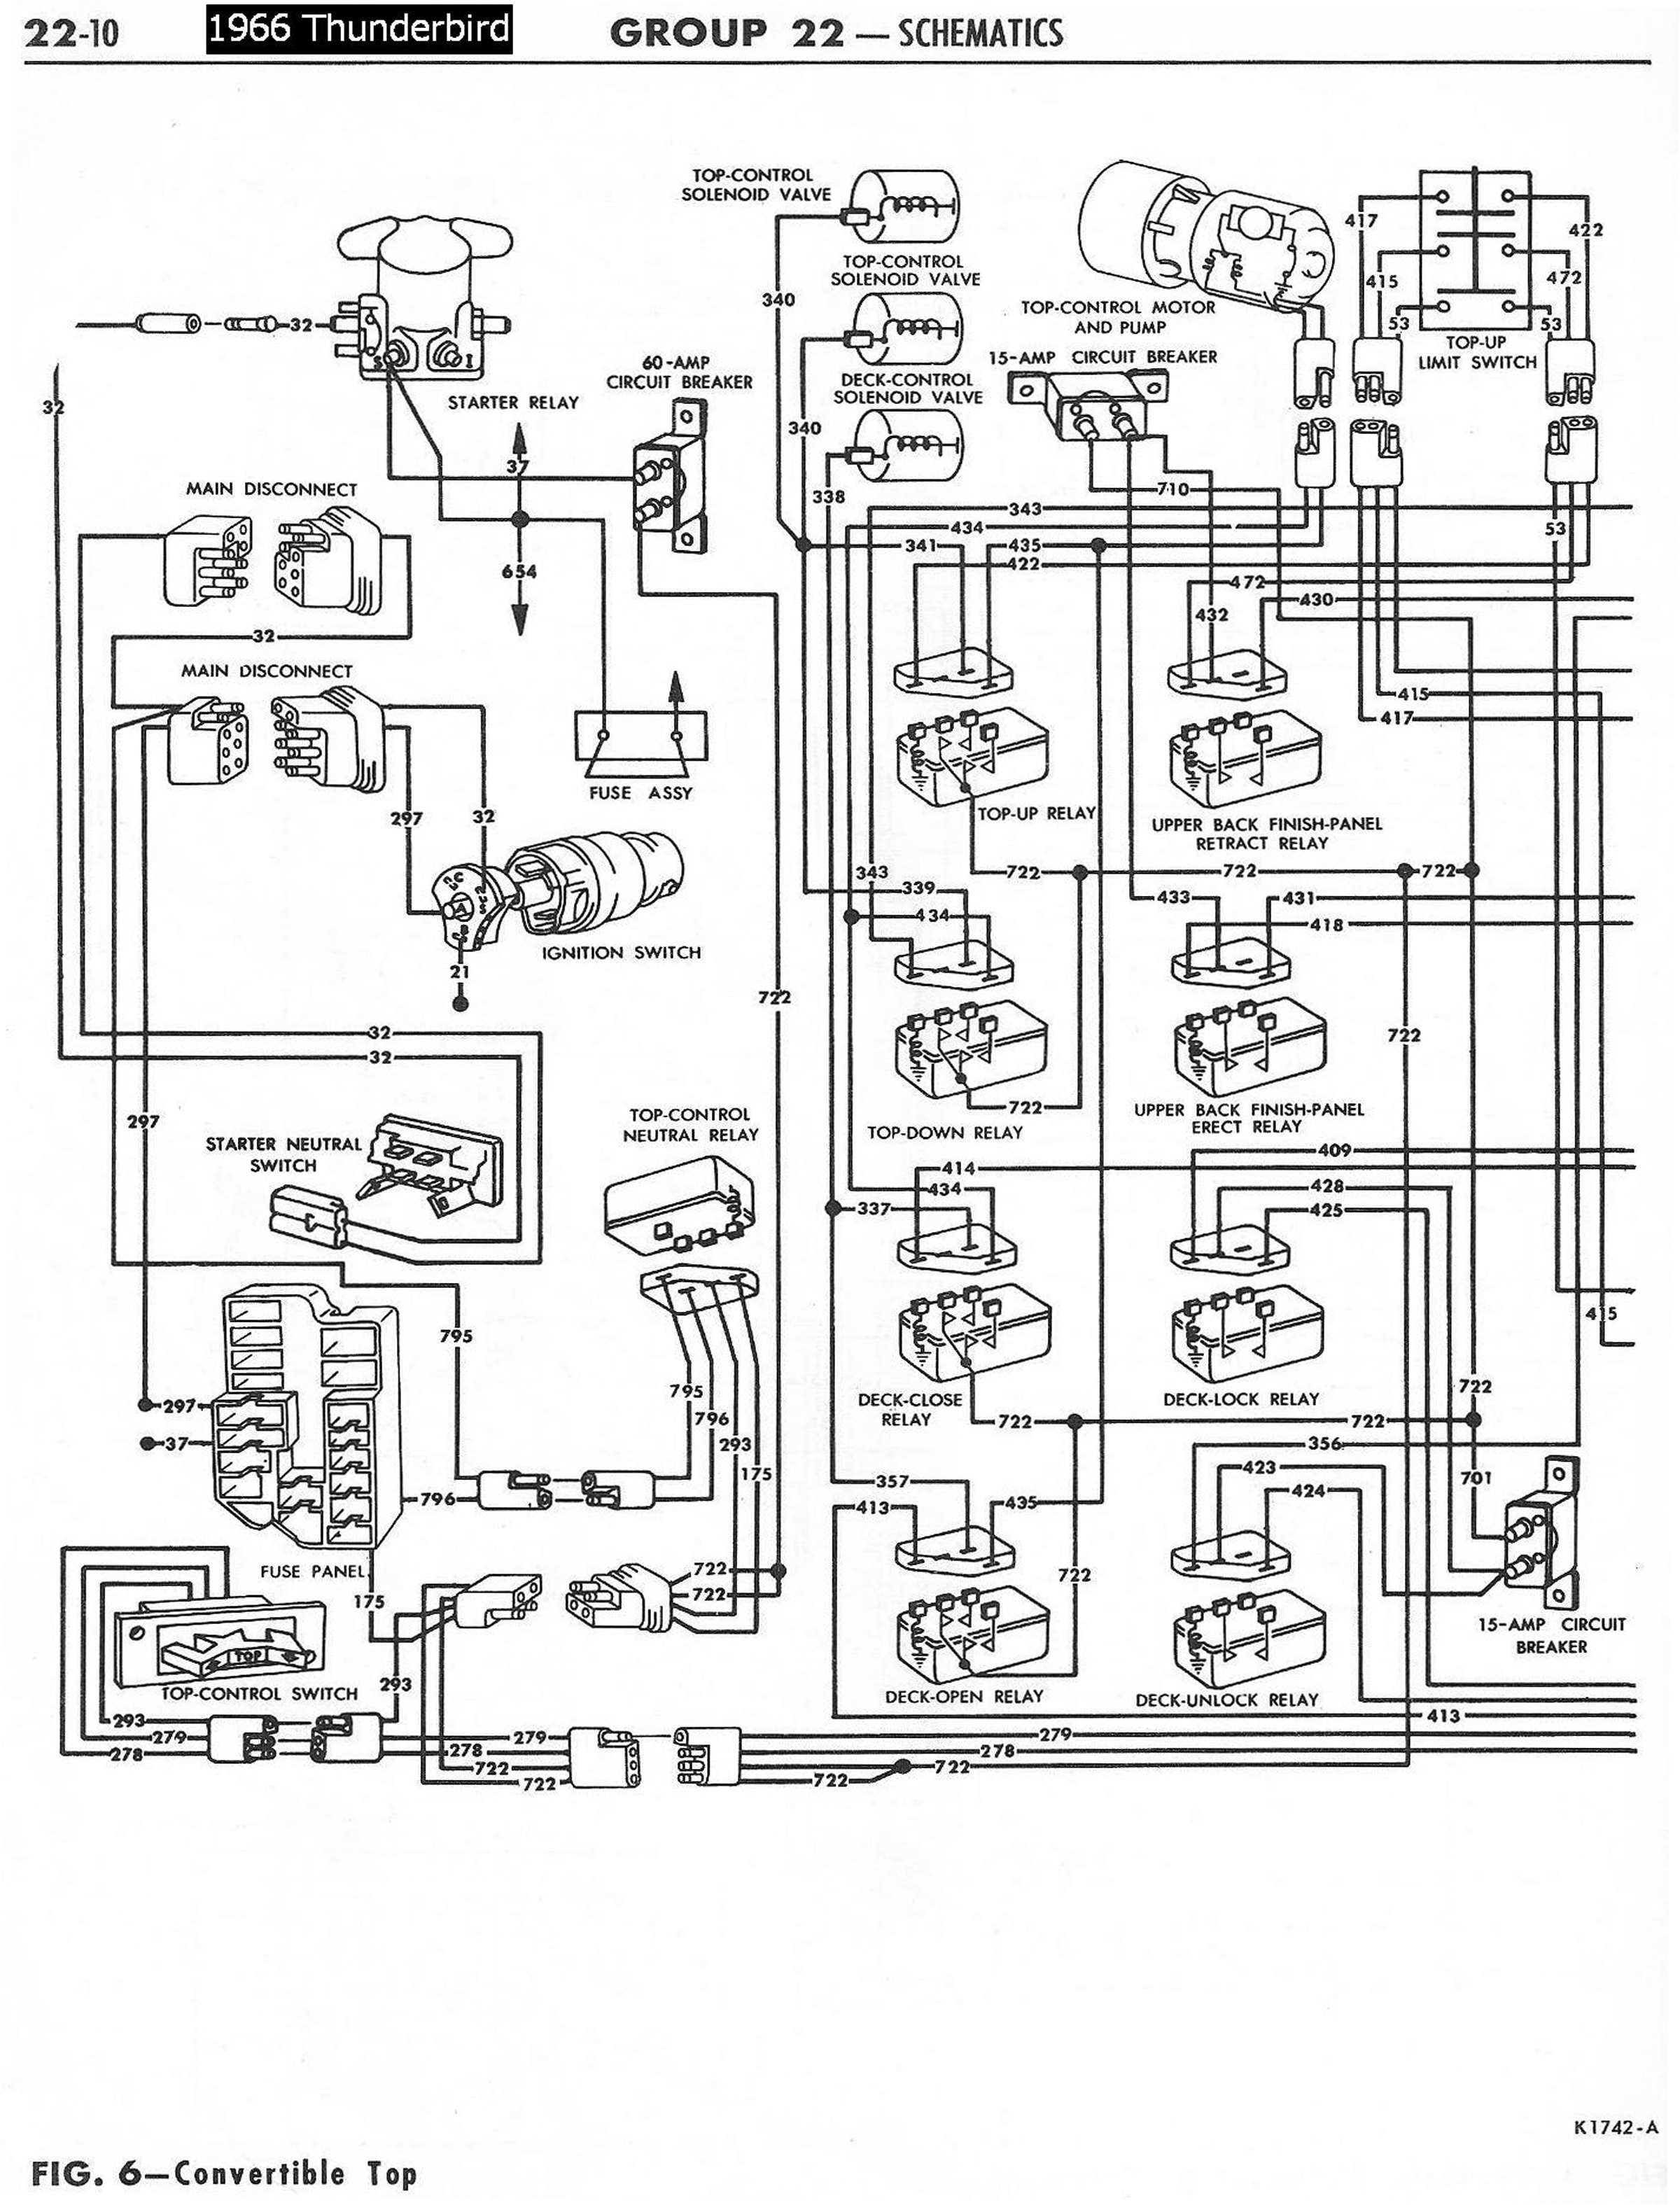 1955 Thunderbird Turn Signal Wiring Diagram : 43 Wiring